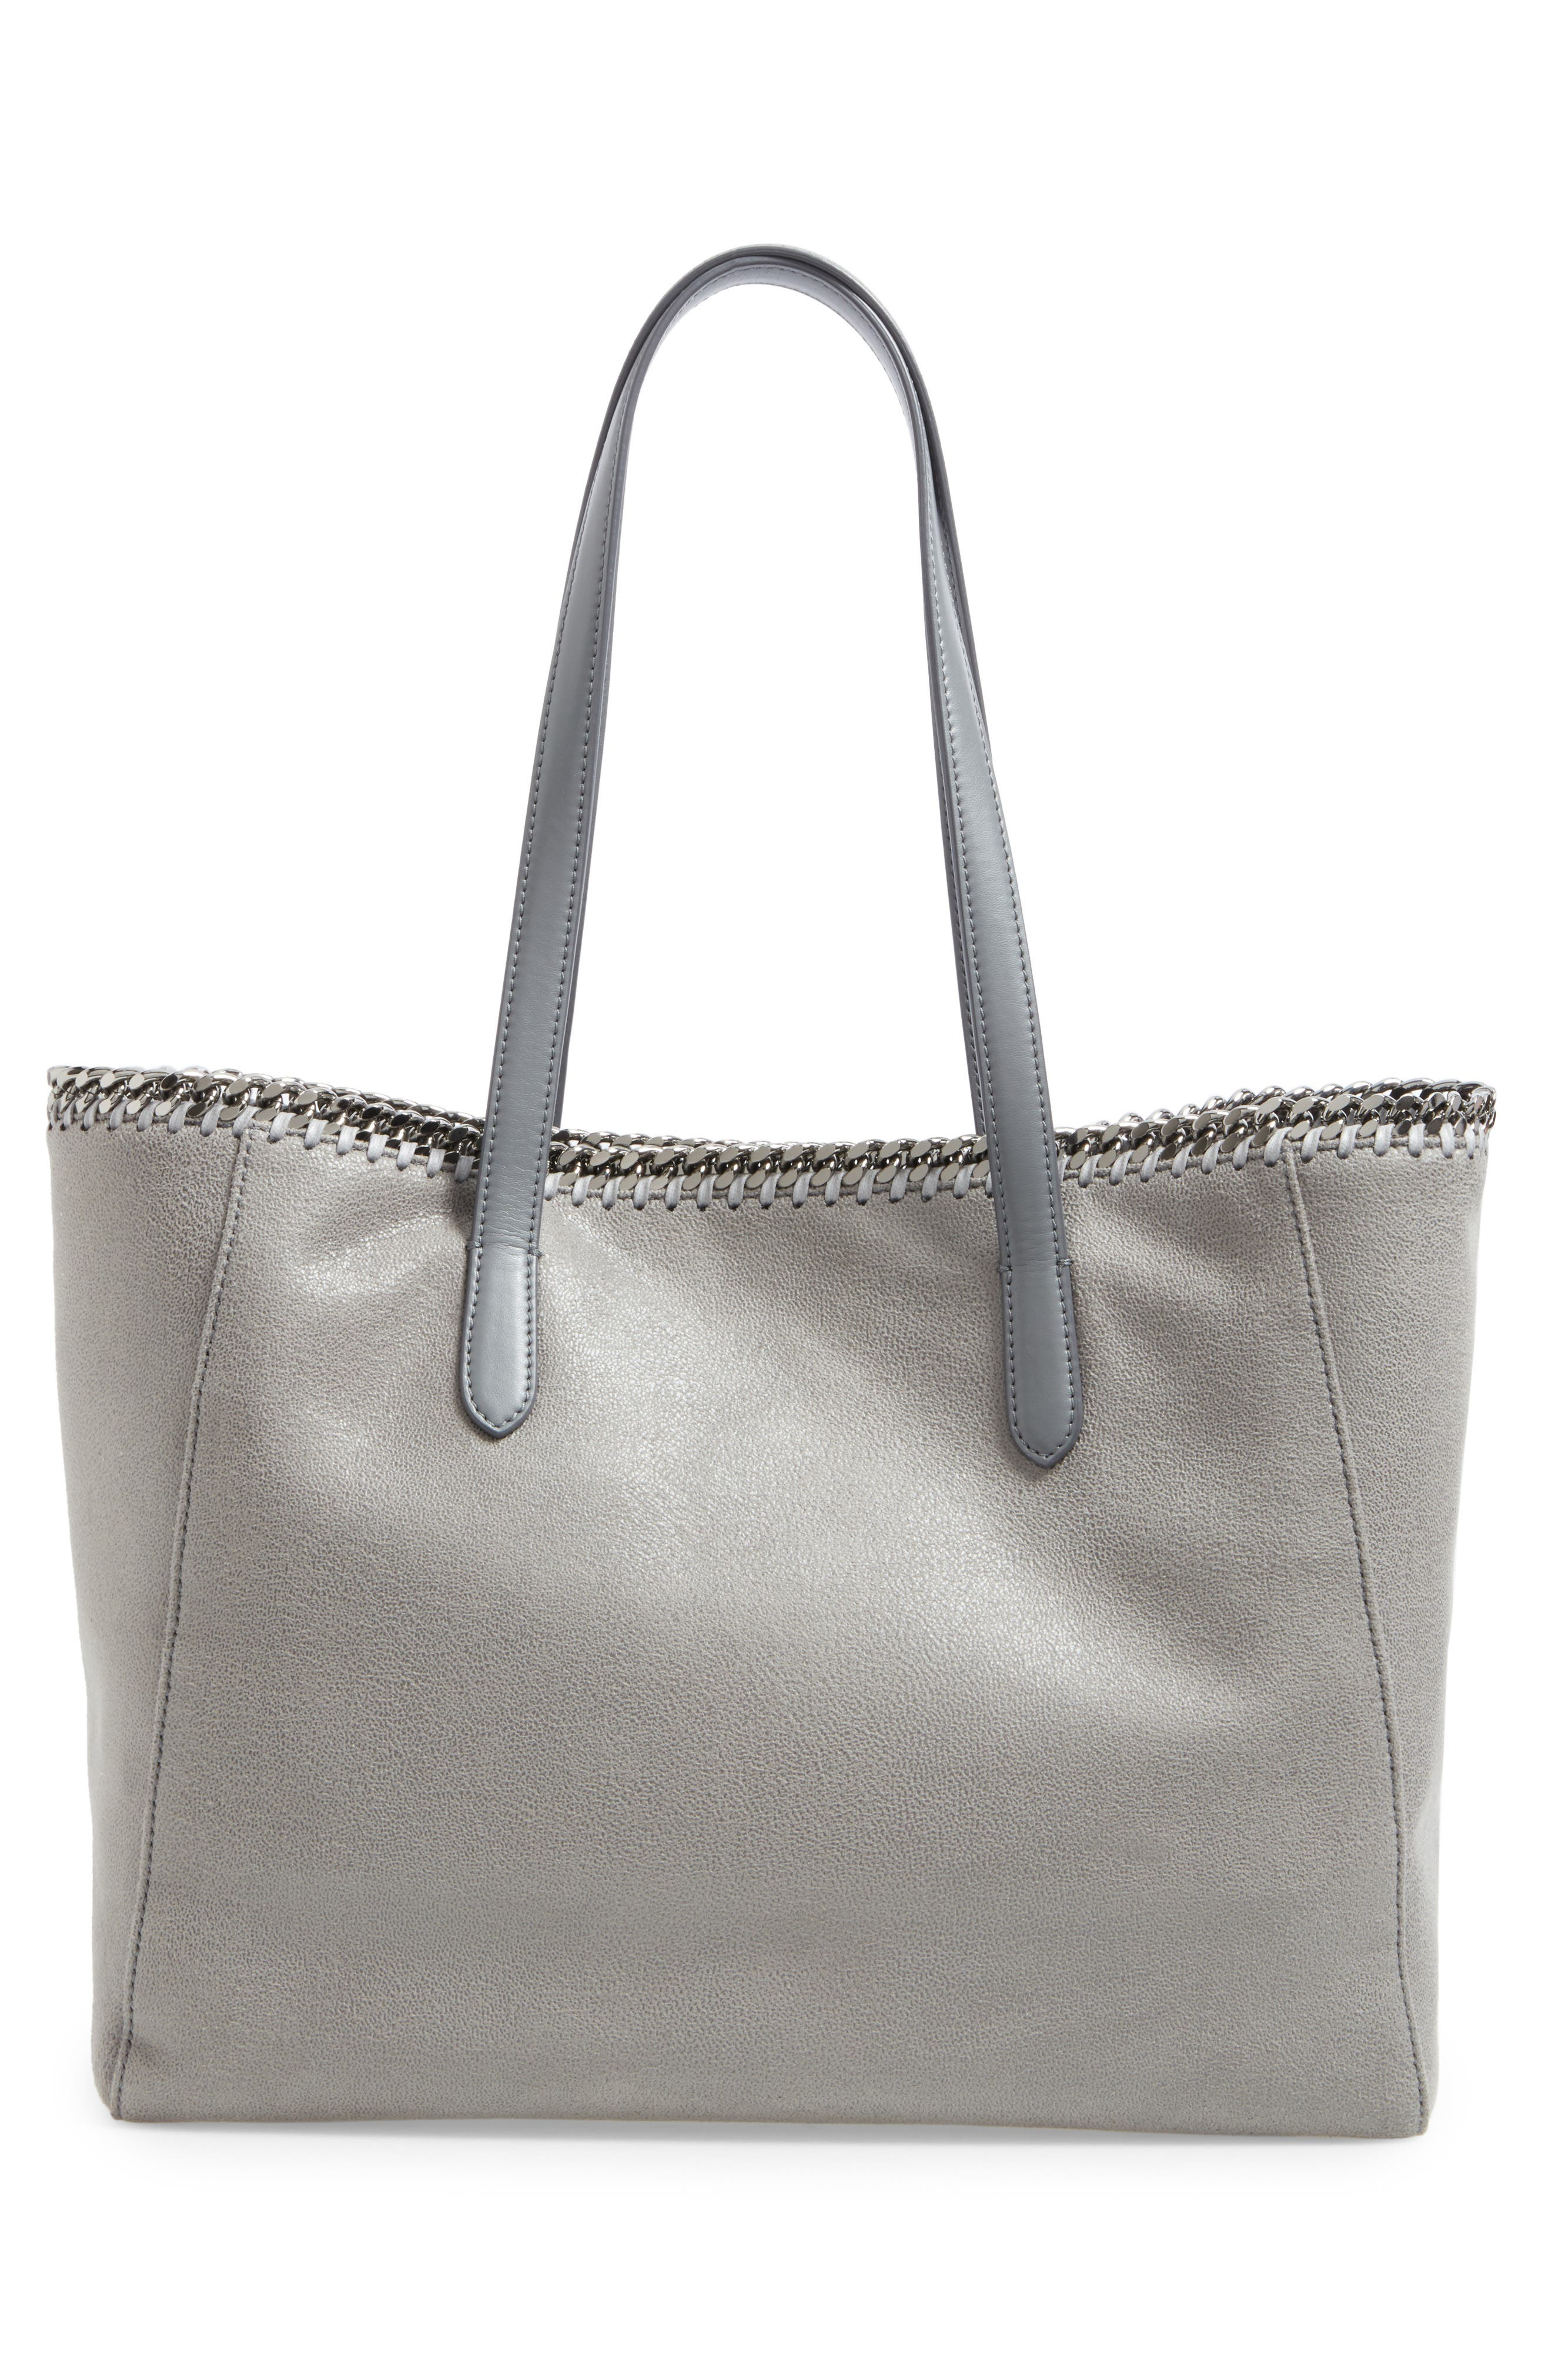 'Falabella - Shaggy Deer' Faux Leather Tote,                             Alternate thumbnail 3, color,                             Light Grey